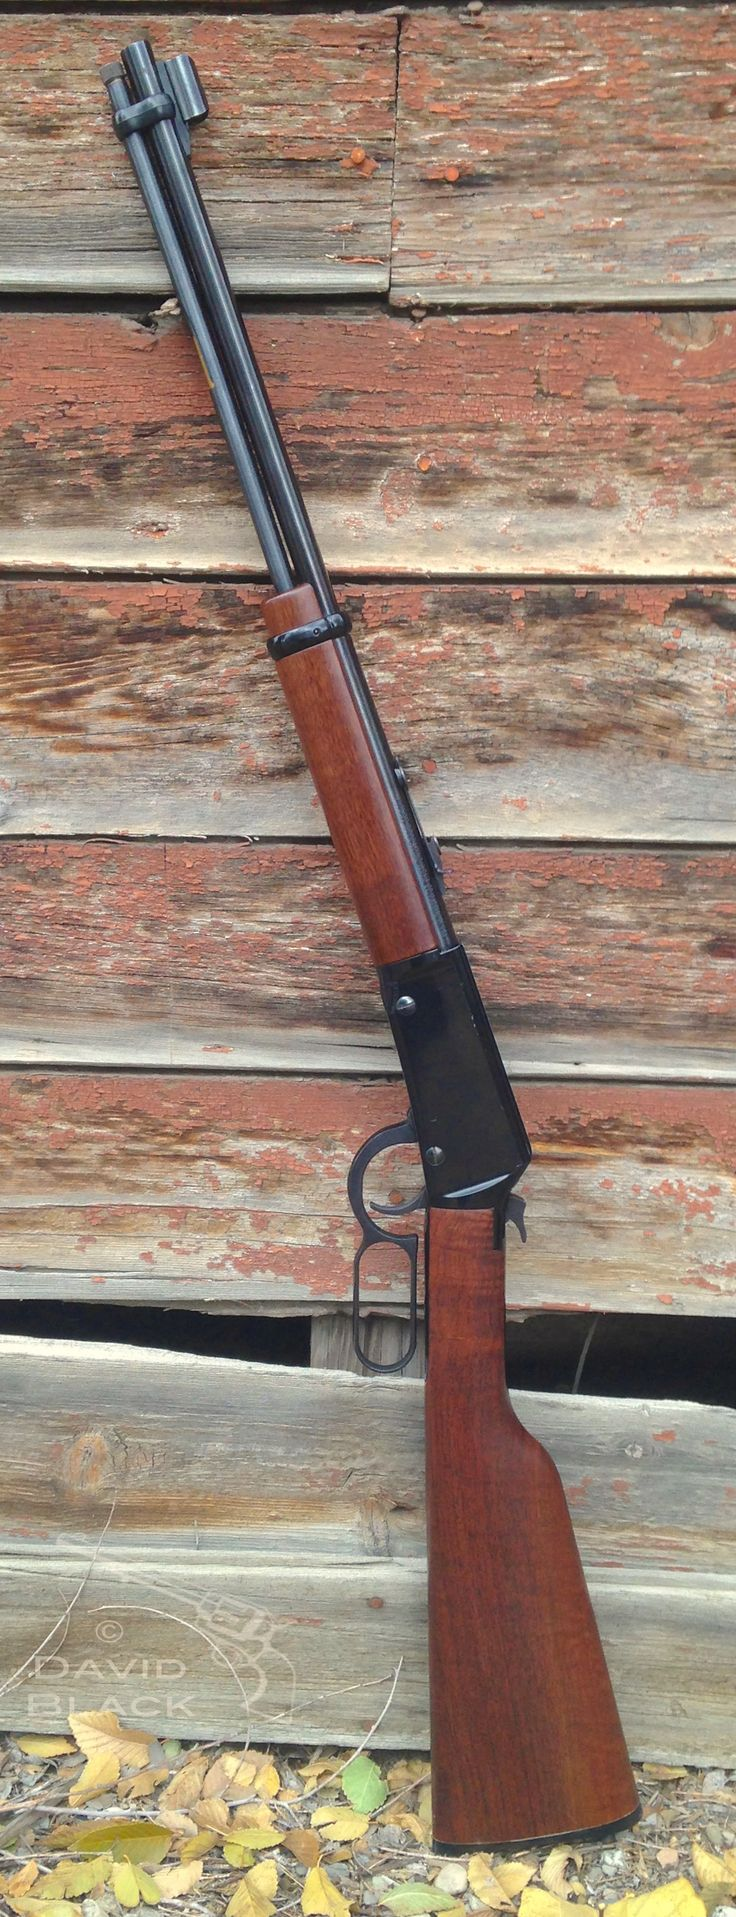 Henry 22 lever action rifle.  Great gun, accurate and fun action.  Love plinking with this gun.